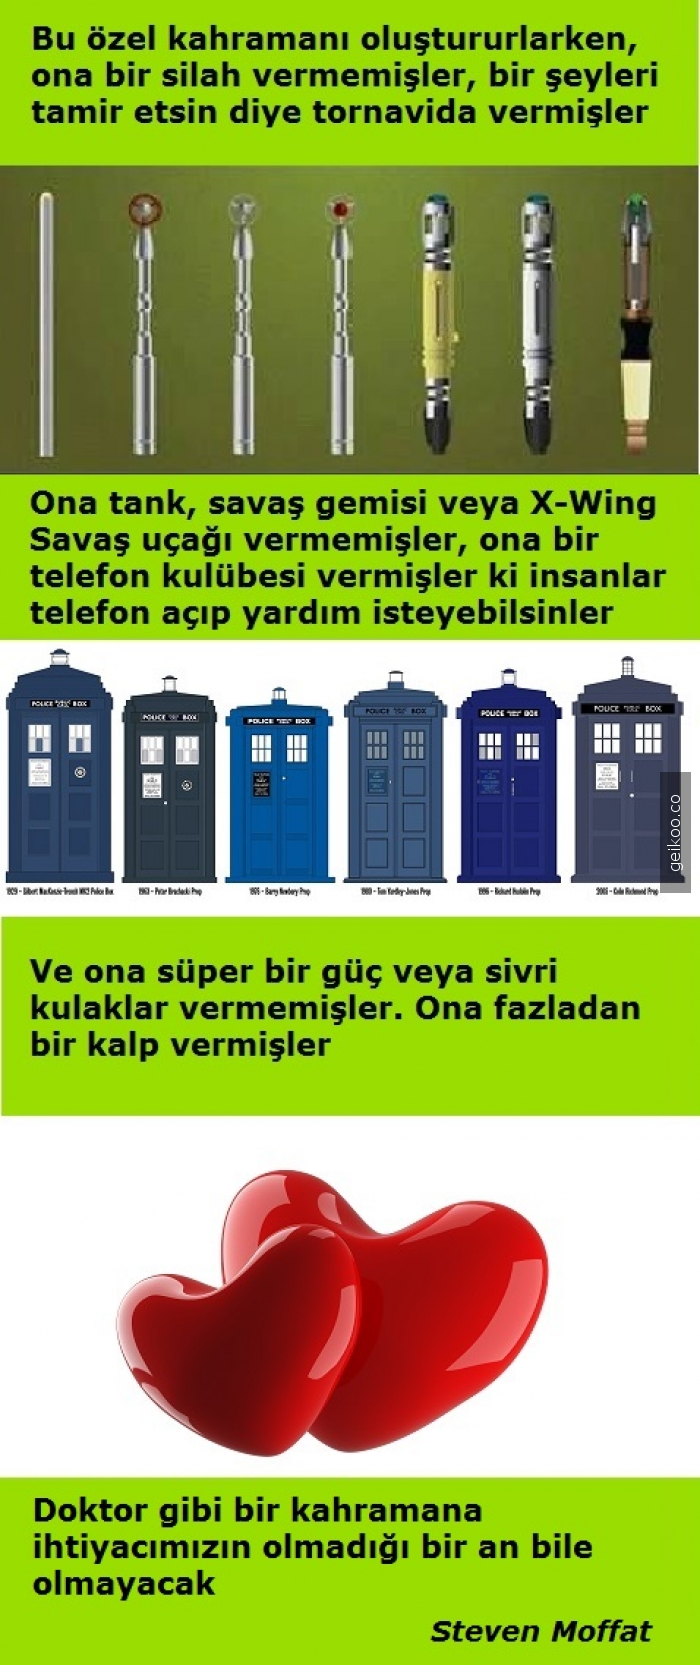 Doctor Who'nun temeli